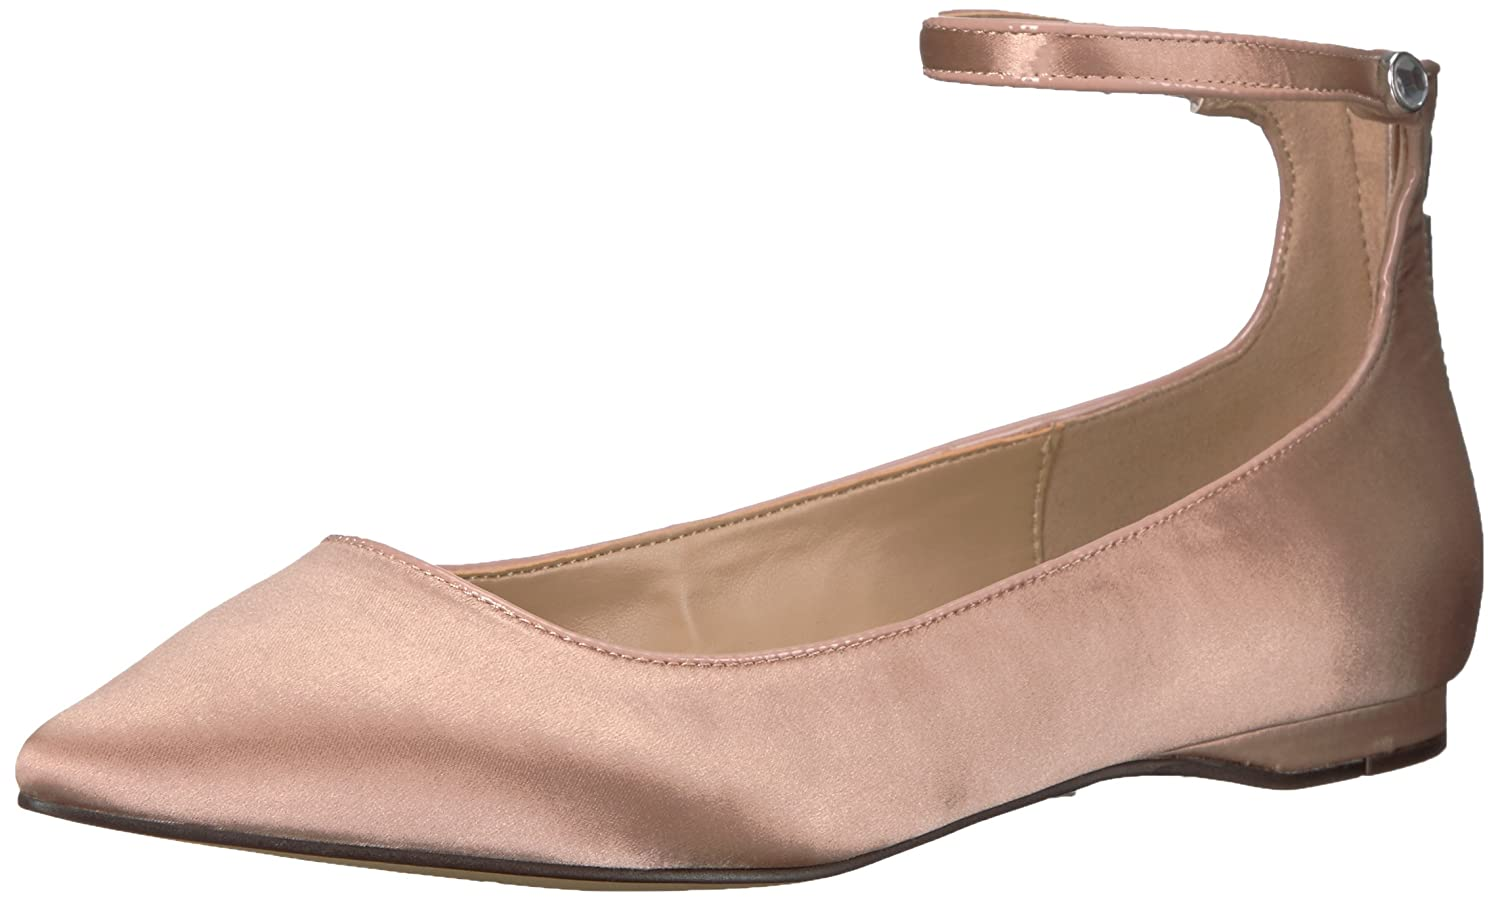 The Fix Women's Evie Military-Inspired Ankle Strap Pointed-Toe Flat B074KQR52C 8 B(M) US|Petal Blush Satin